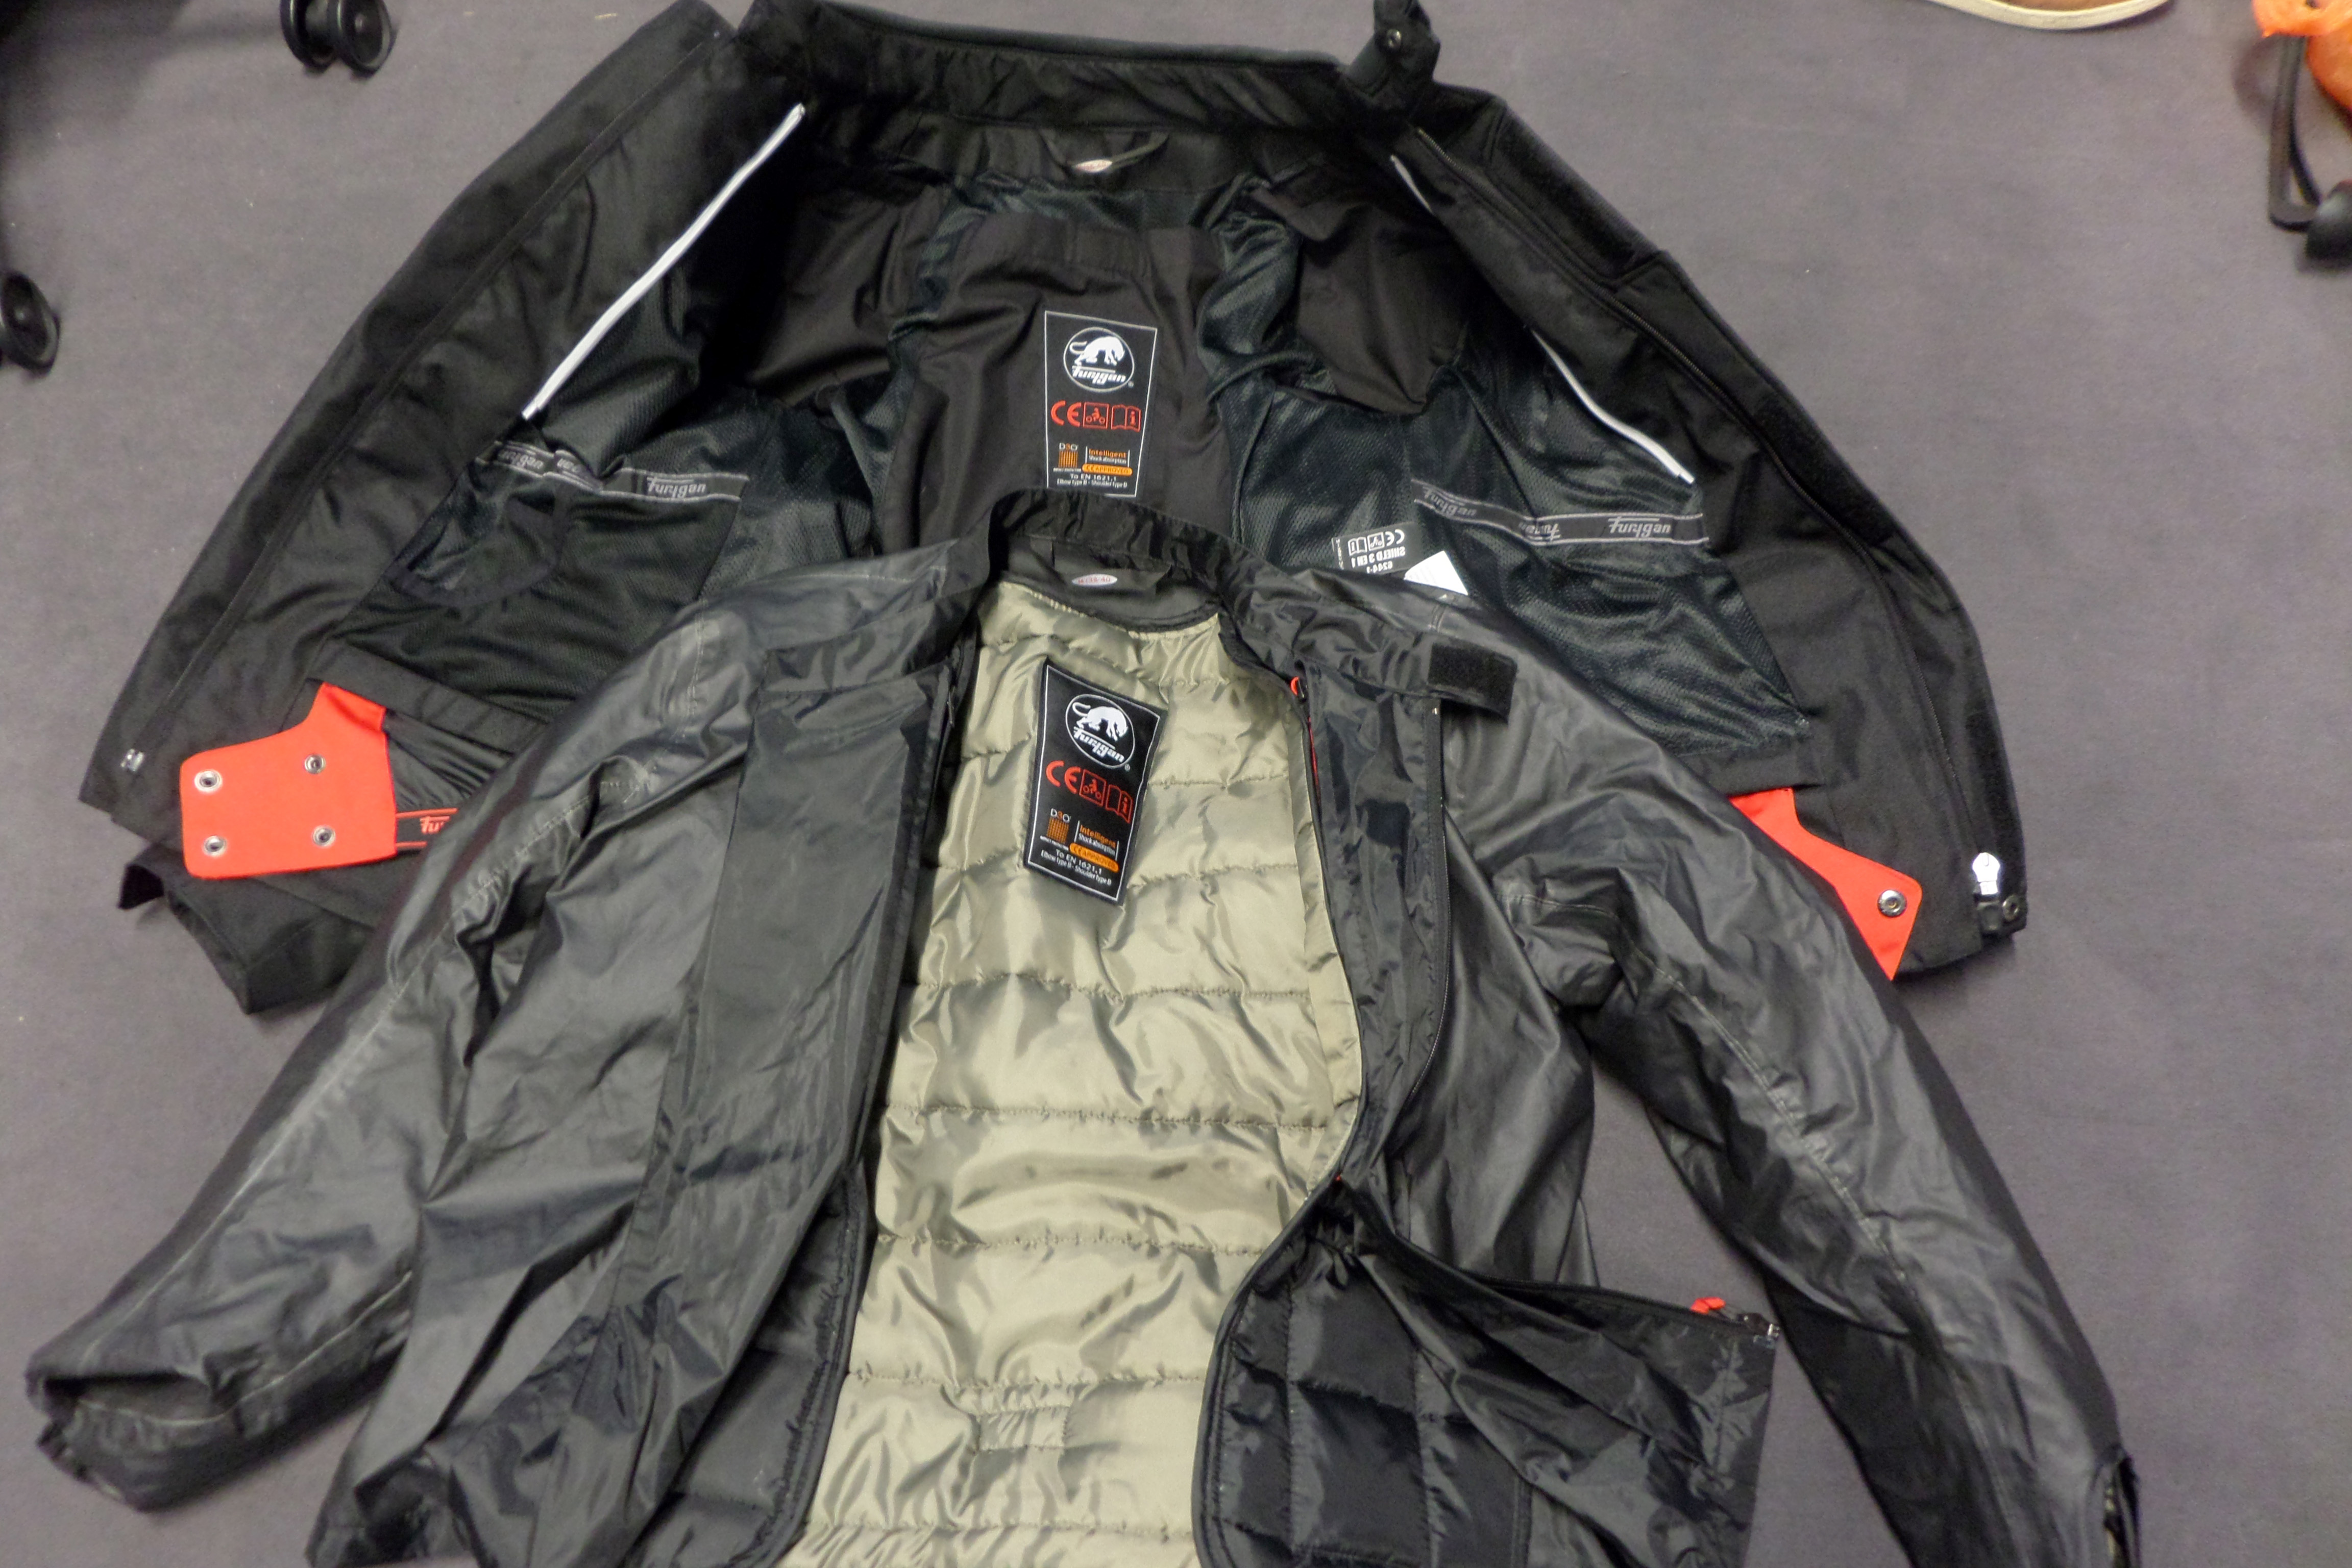 Used: Furygan Shield 3-in-1 textile jacket review